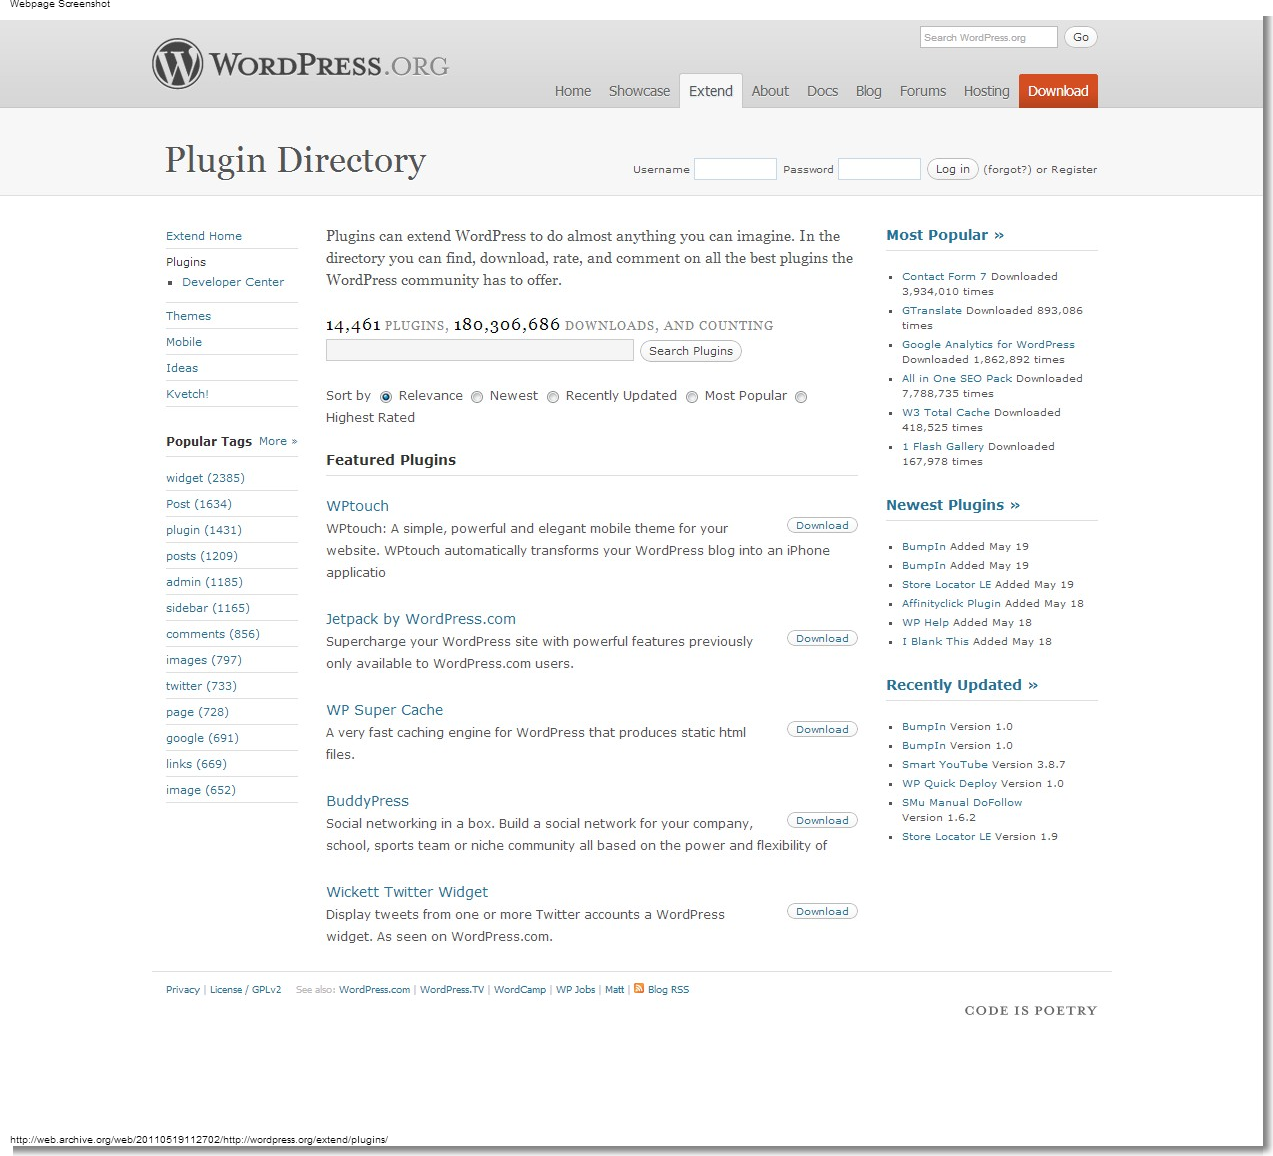 May 19, 2011 - WordPress - WordPress Plugins